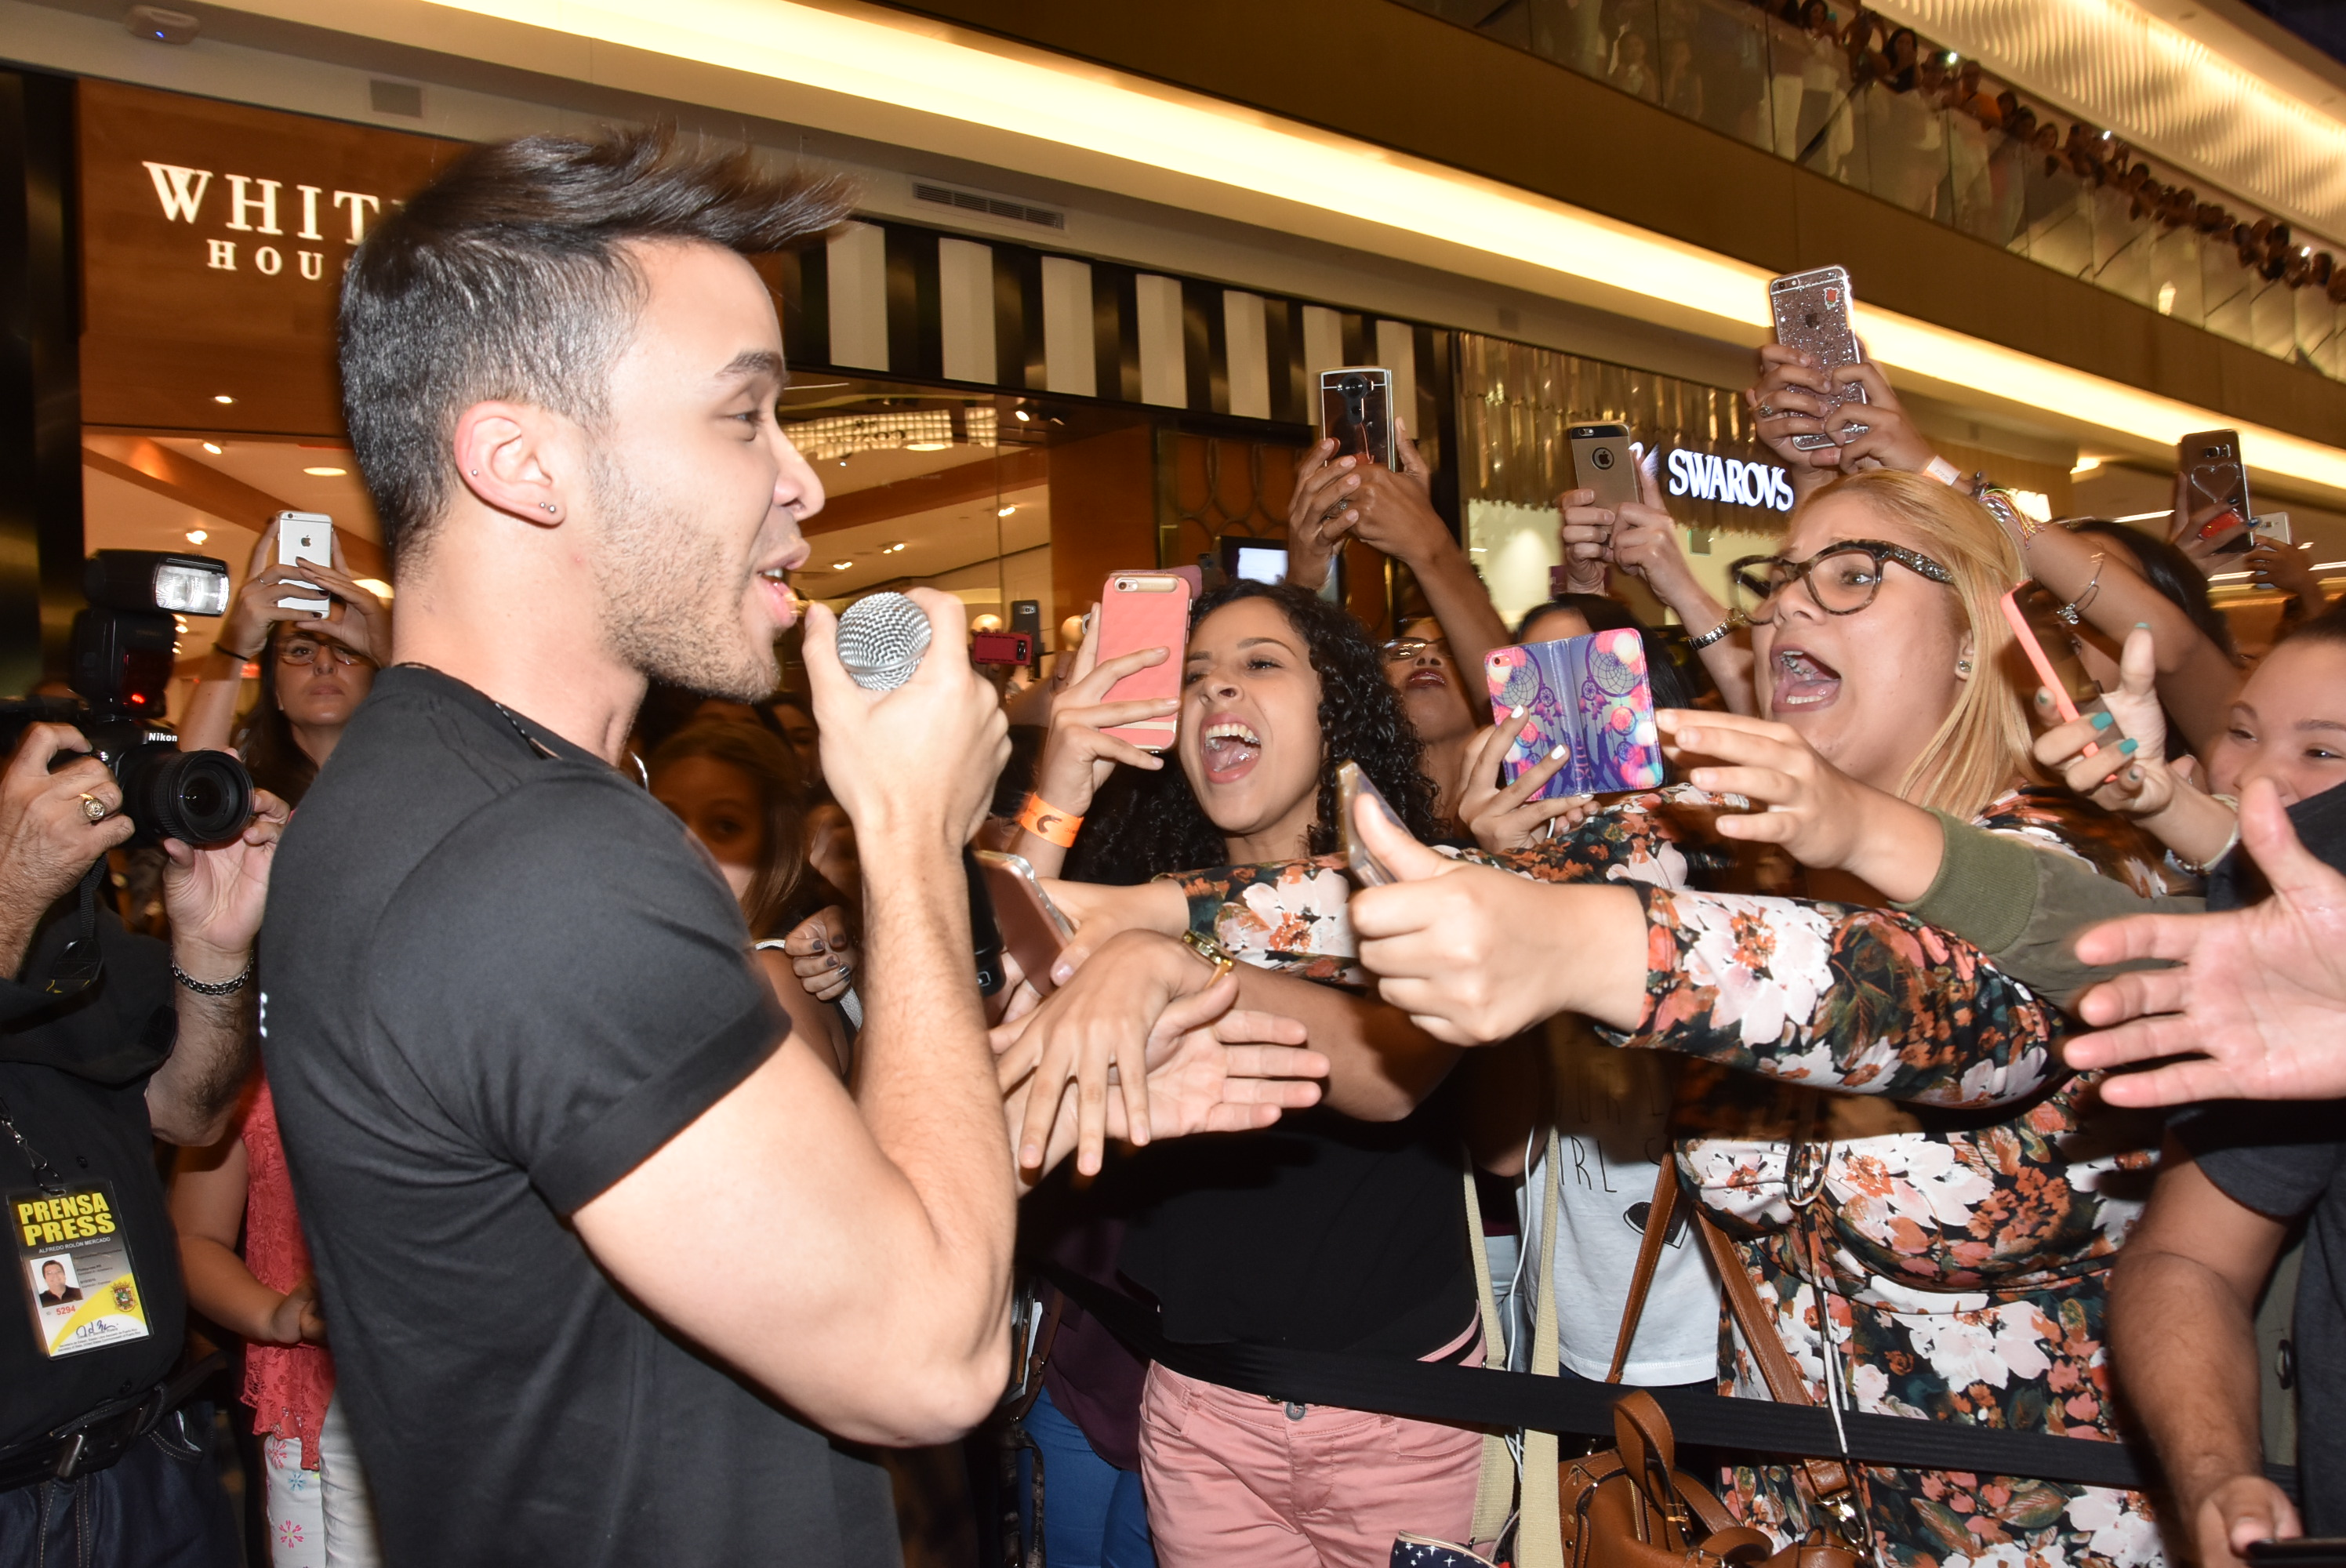 EXCLUSIVE Prince Royce Performs For His Fans In Puerto Rico